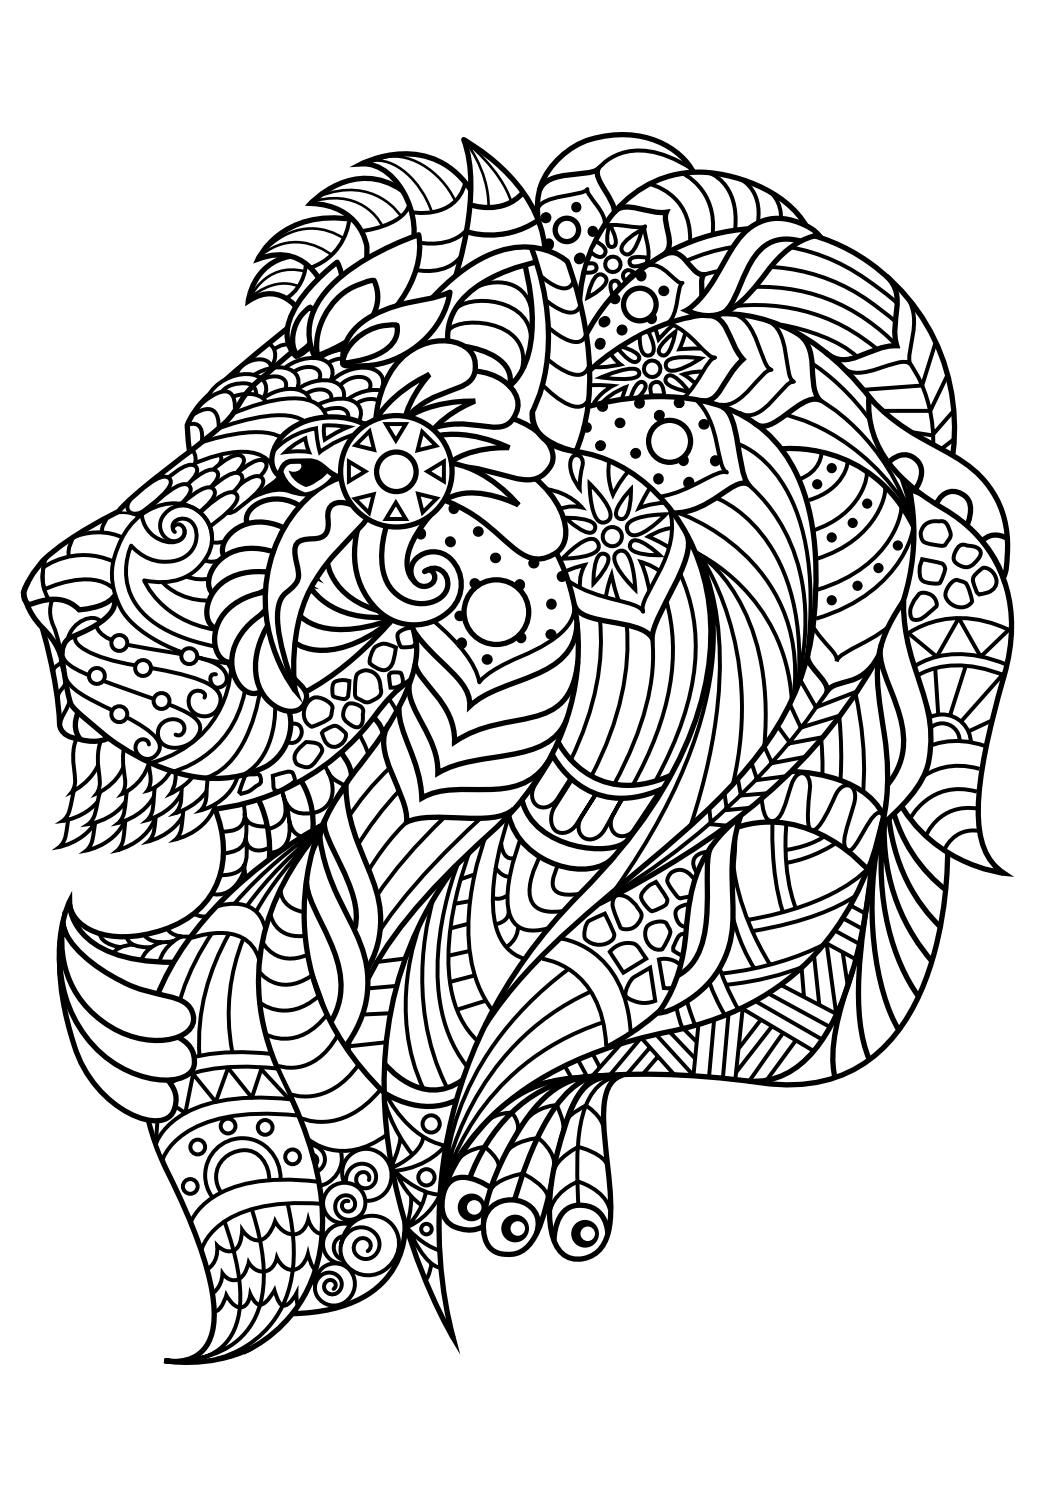 Animal coloring pages pdf Coloring Animals Lion